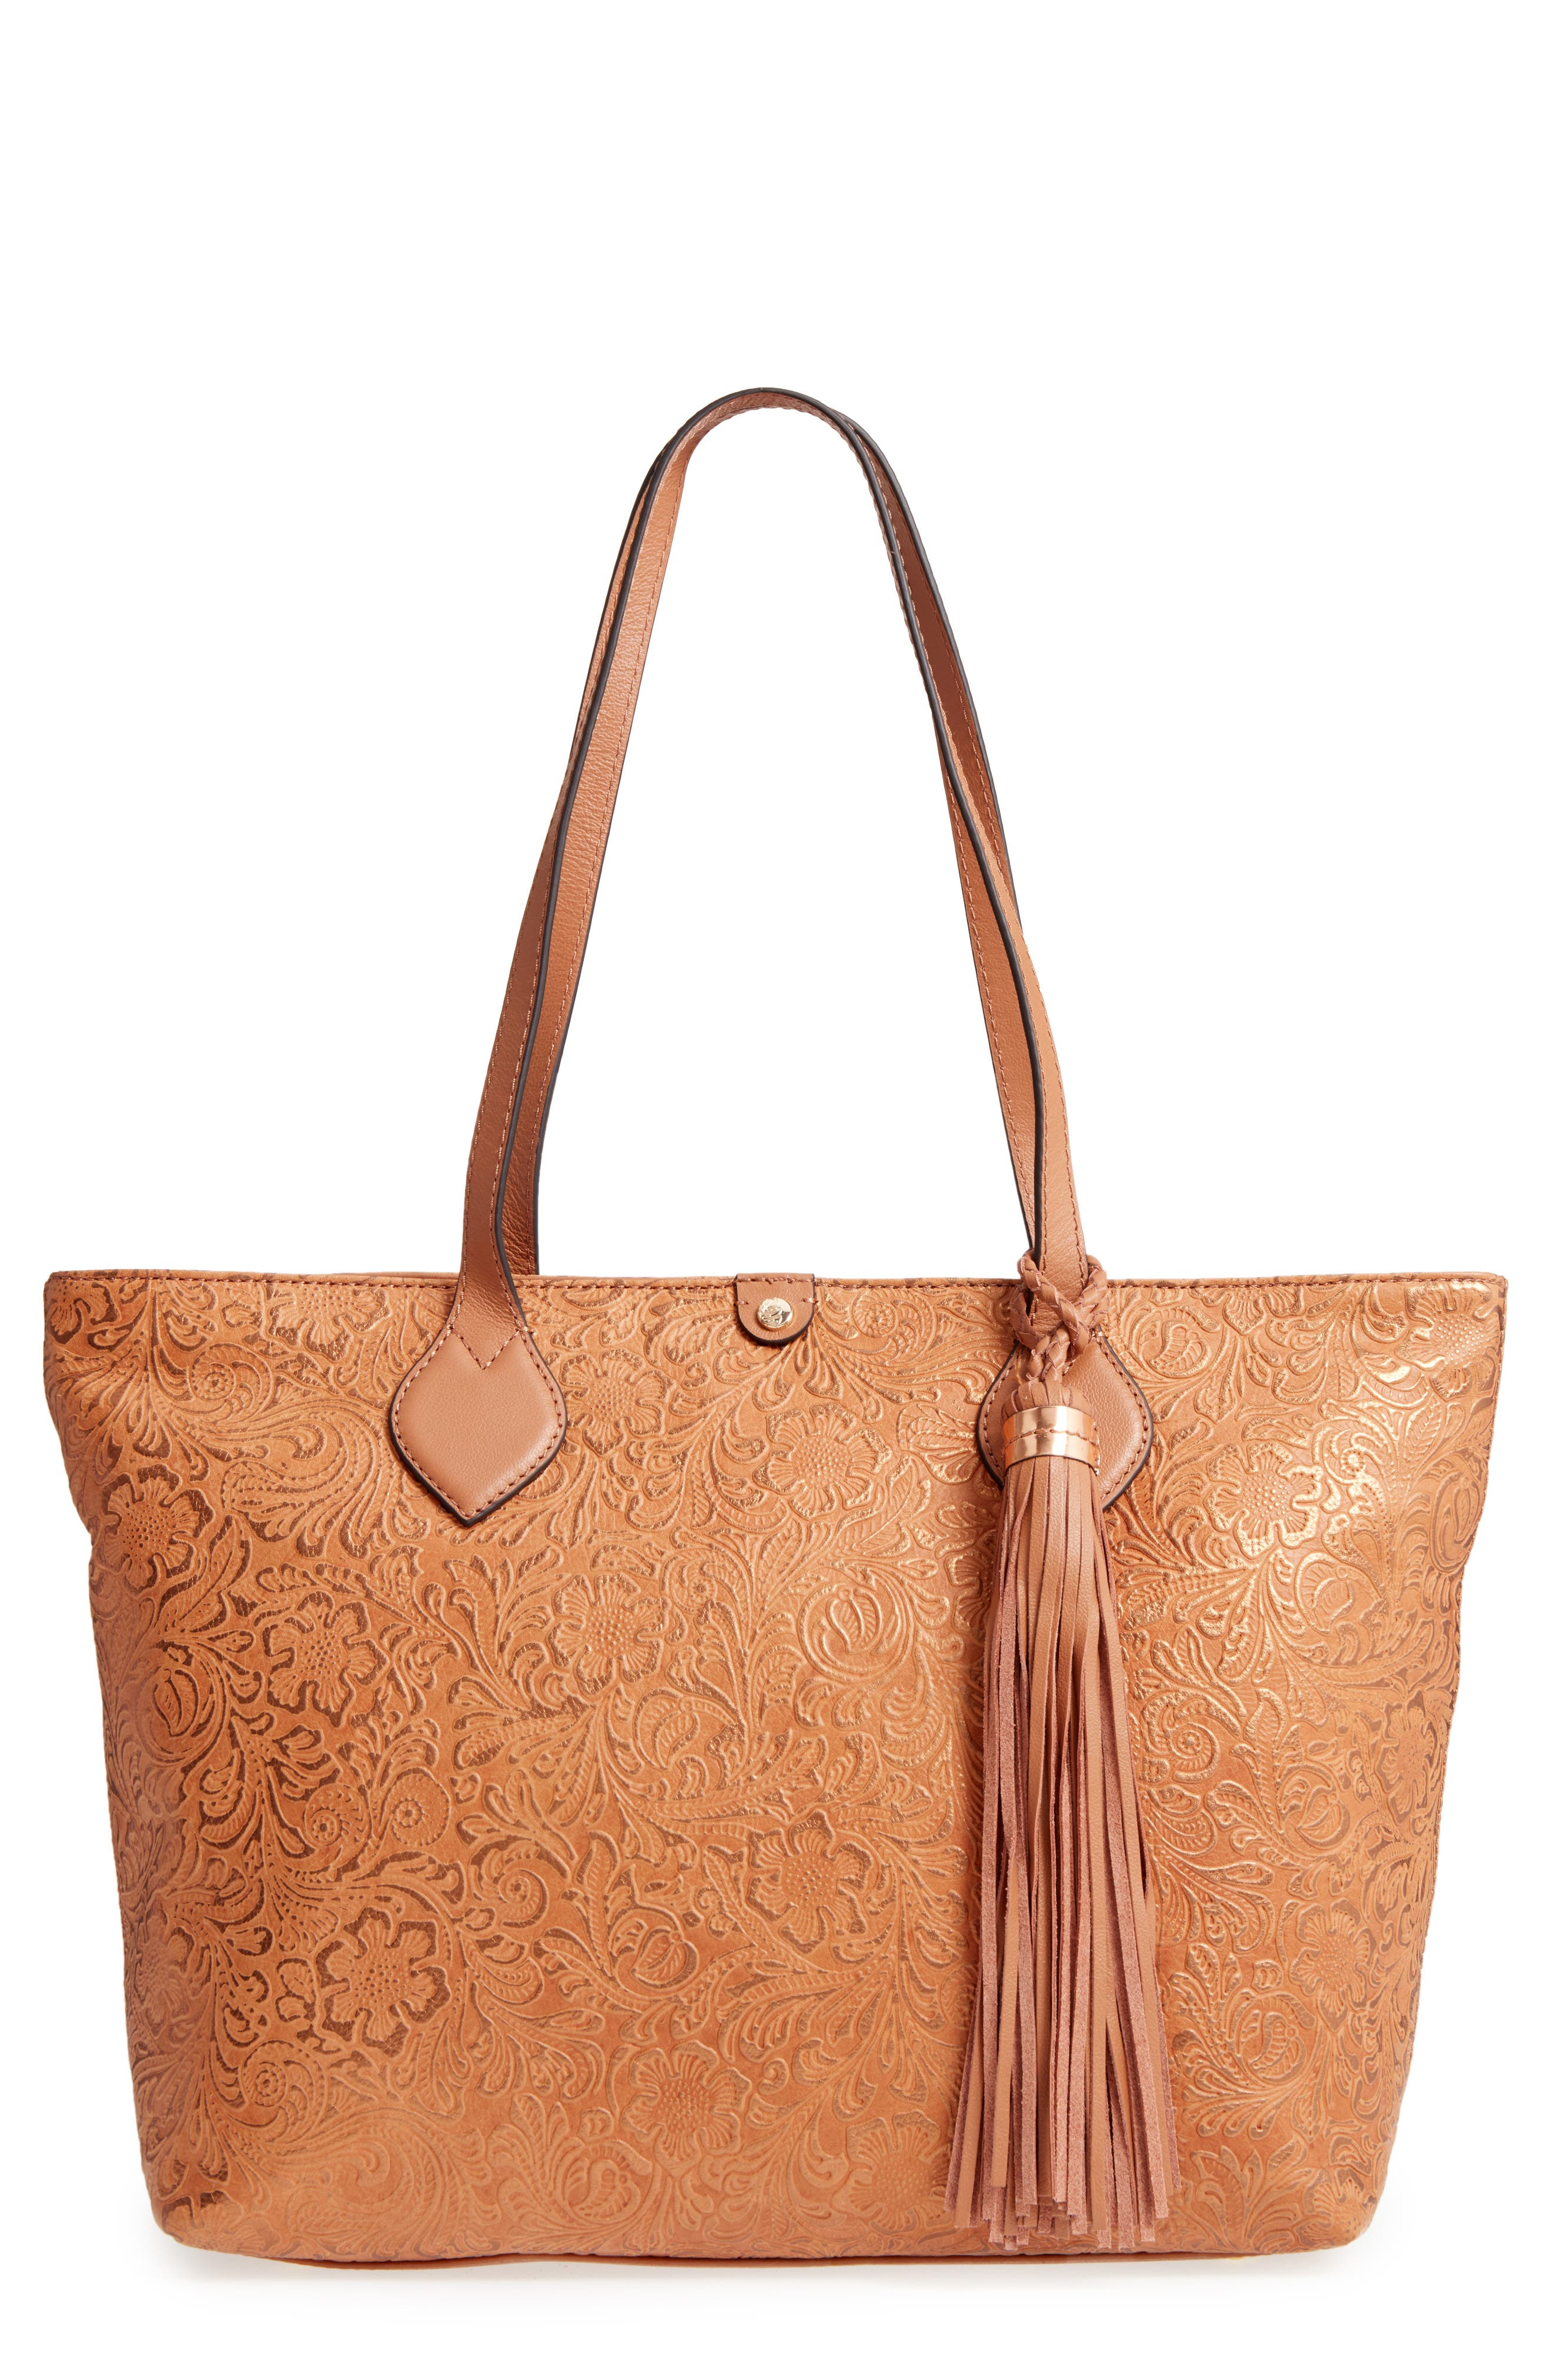 Main Image - Tommy Bahama Barbados Leather Tote